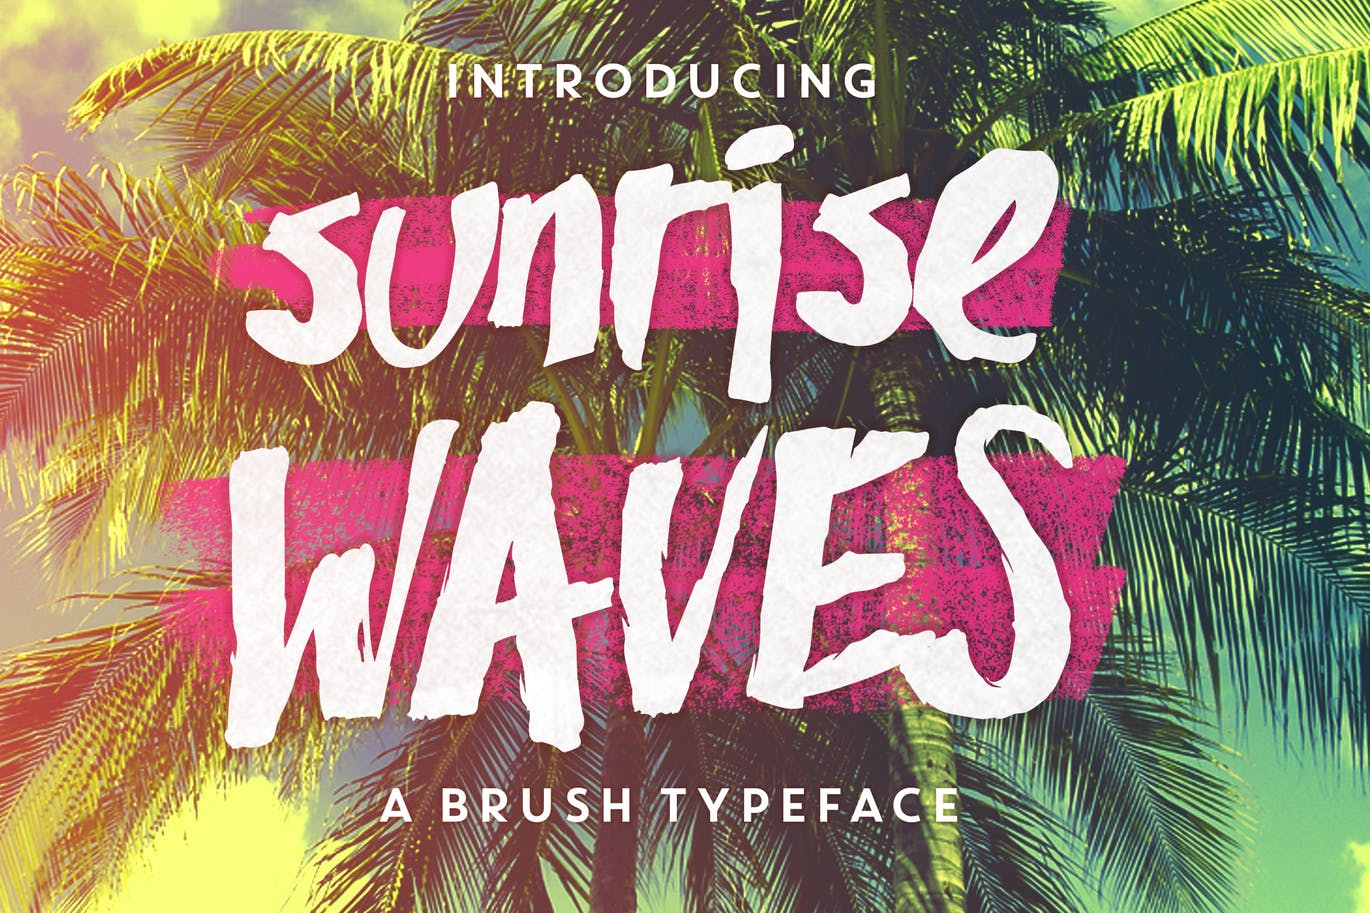 summer website templates sunrise waves